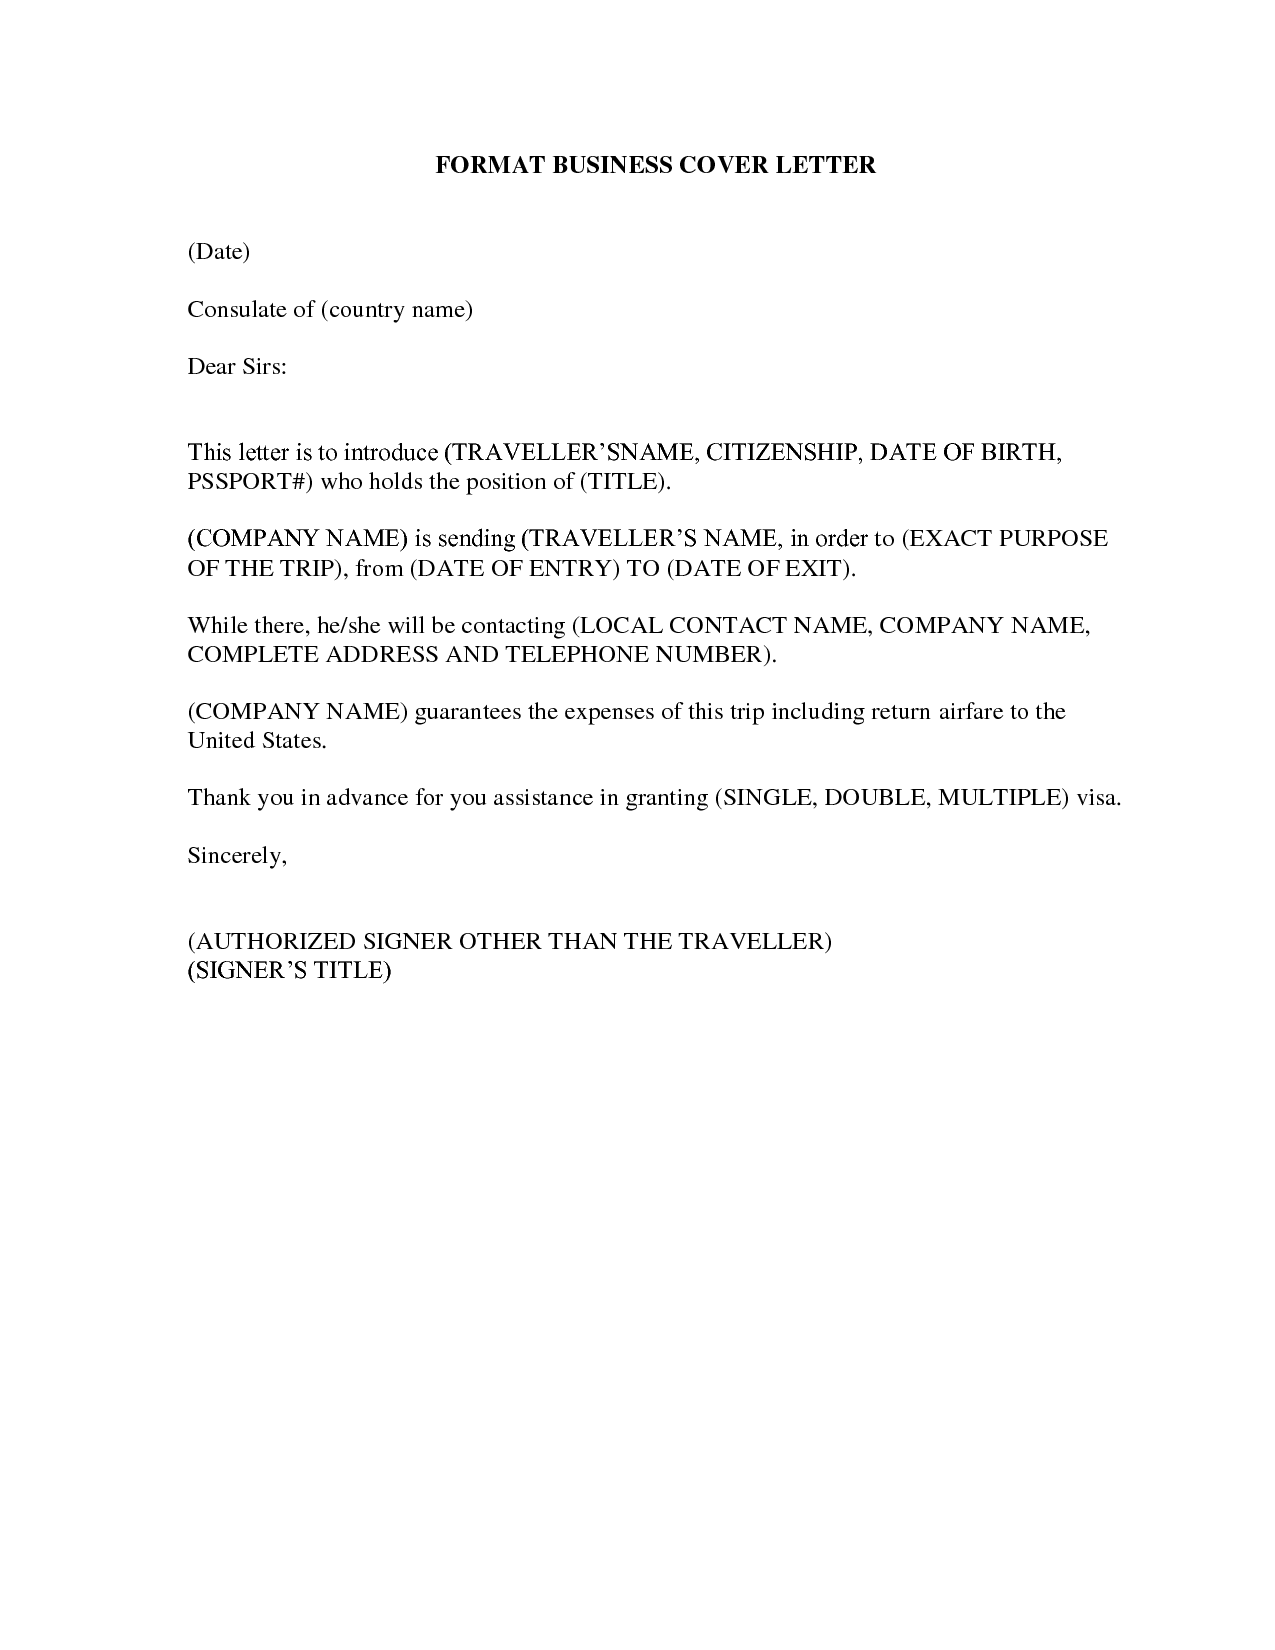 Official Cover Letter Format Formal Business Job Application Basic